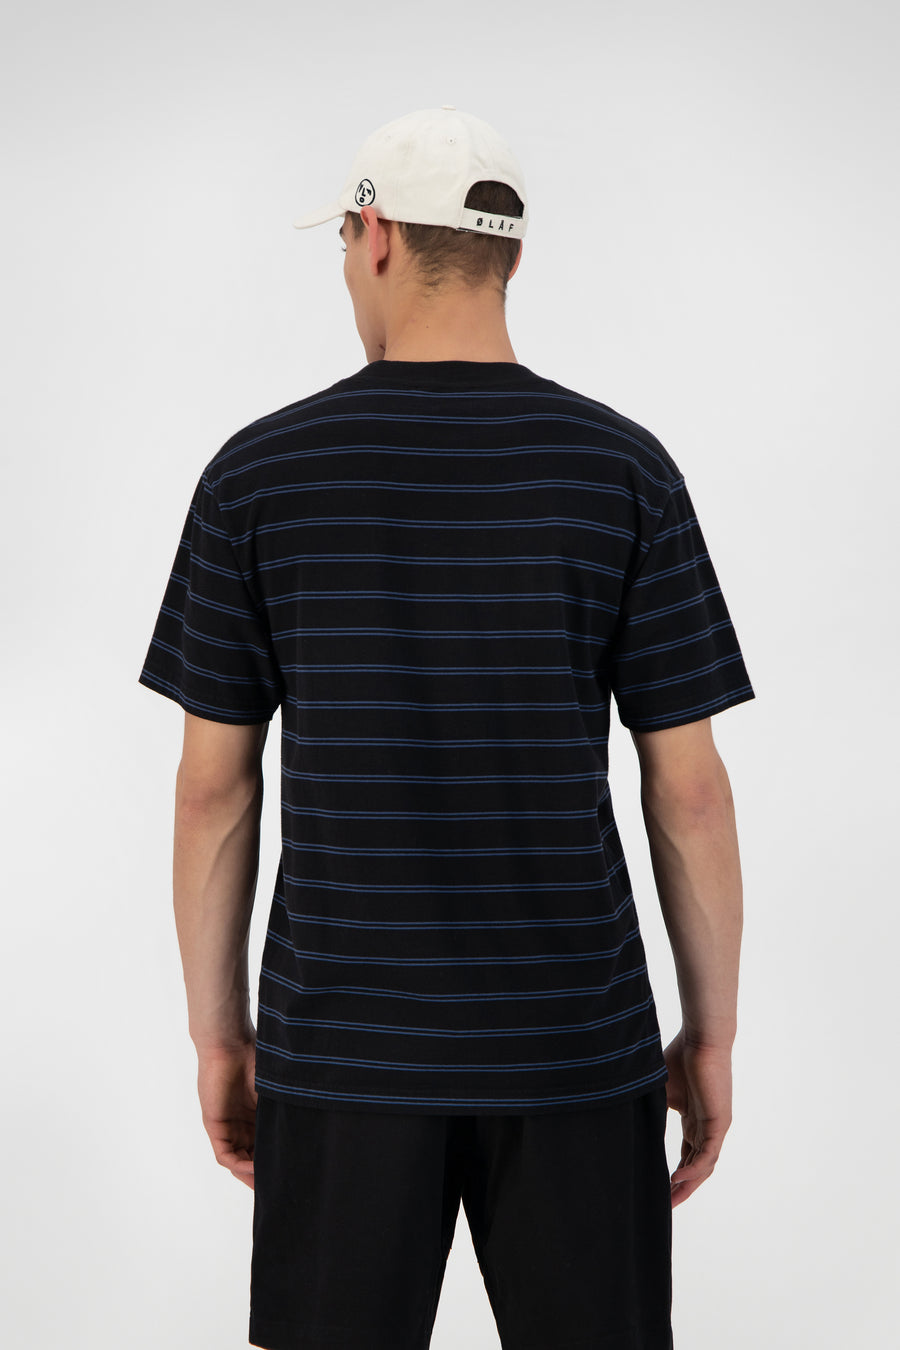 ØLÅF Mini Stripe Tee <br>Black / Blue Slate